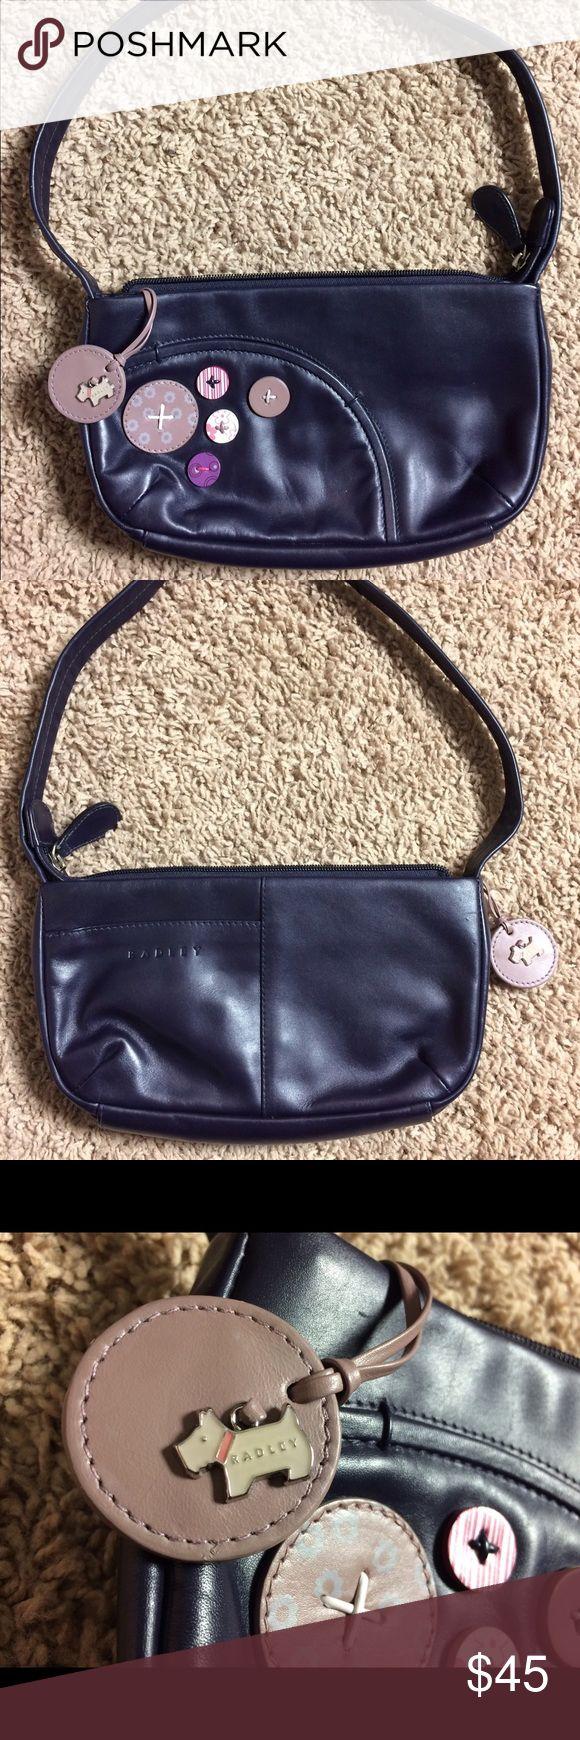 """Radley Dark Blue Small Leather Shoulder Bag! CUTE! Up for sale is a """"Radley"""" small dark blue leather shoulder bag. Cute dog charm connected to bag! In excellent condition inside and out. Comes from a smoke free home. Radley London Bags Shoulder Bags"""